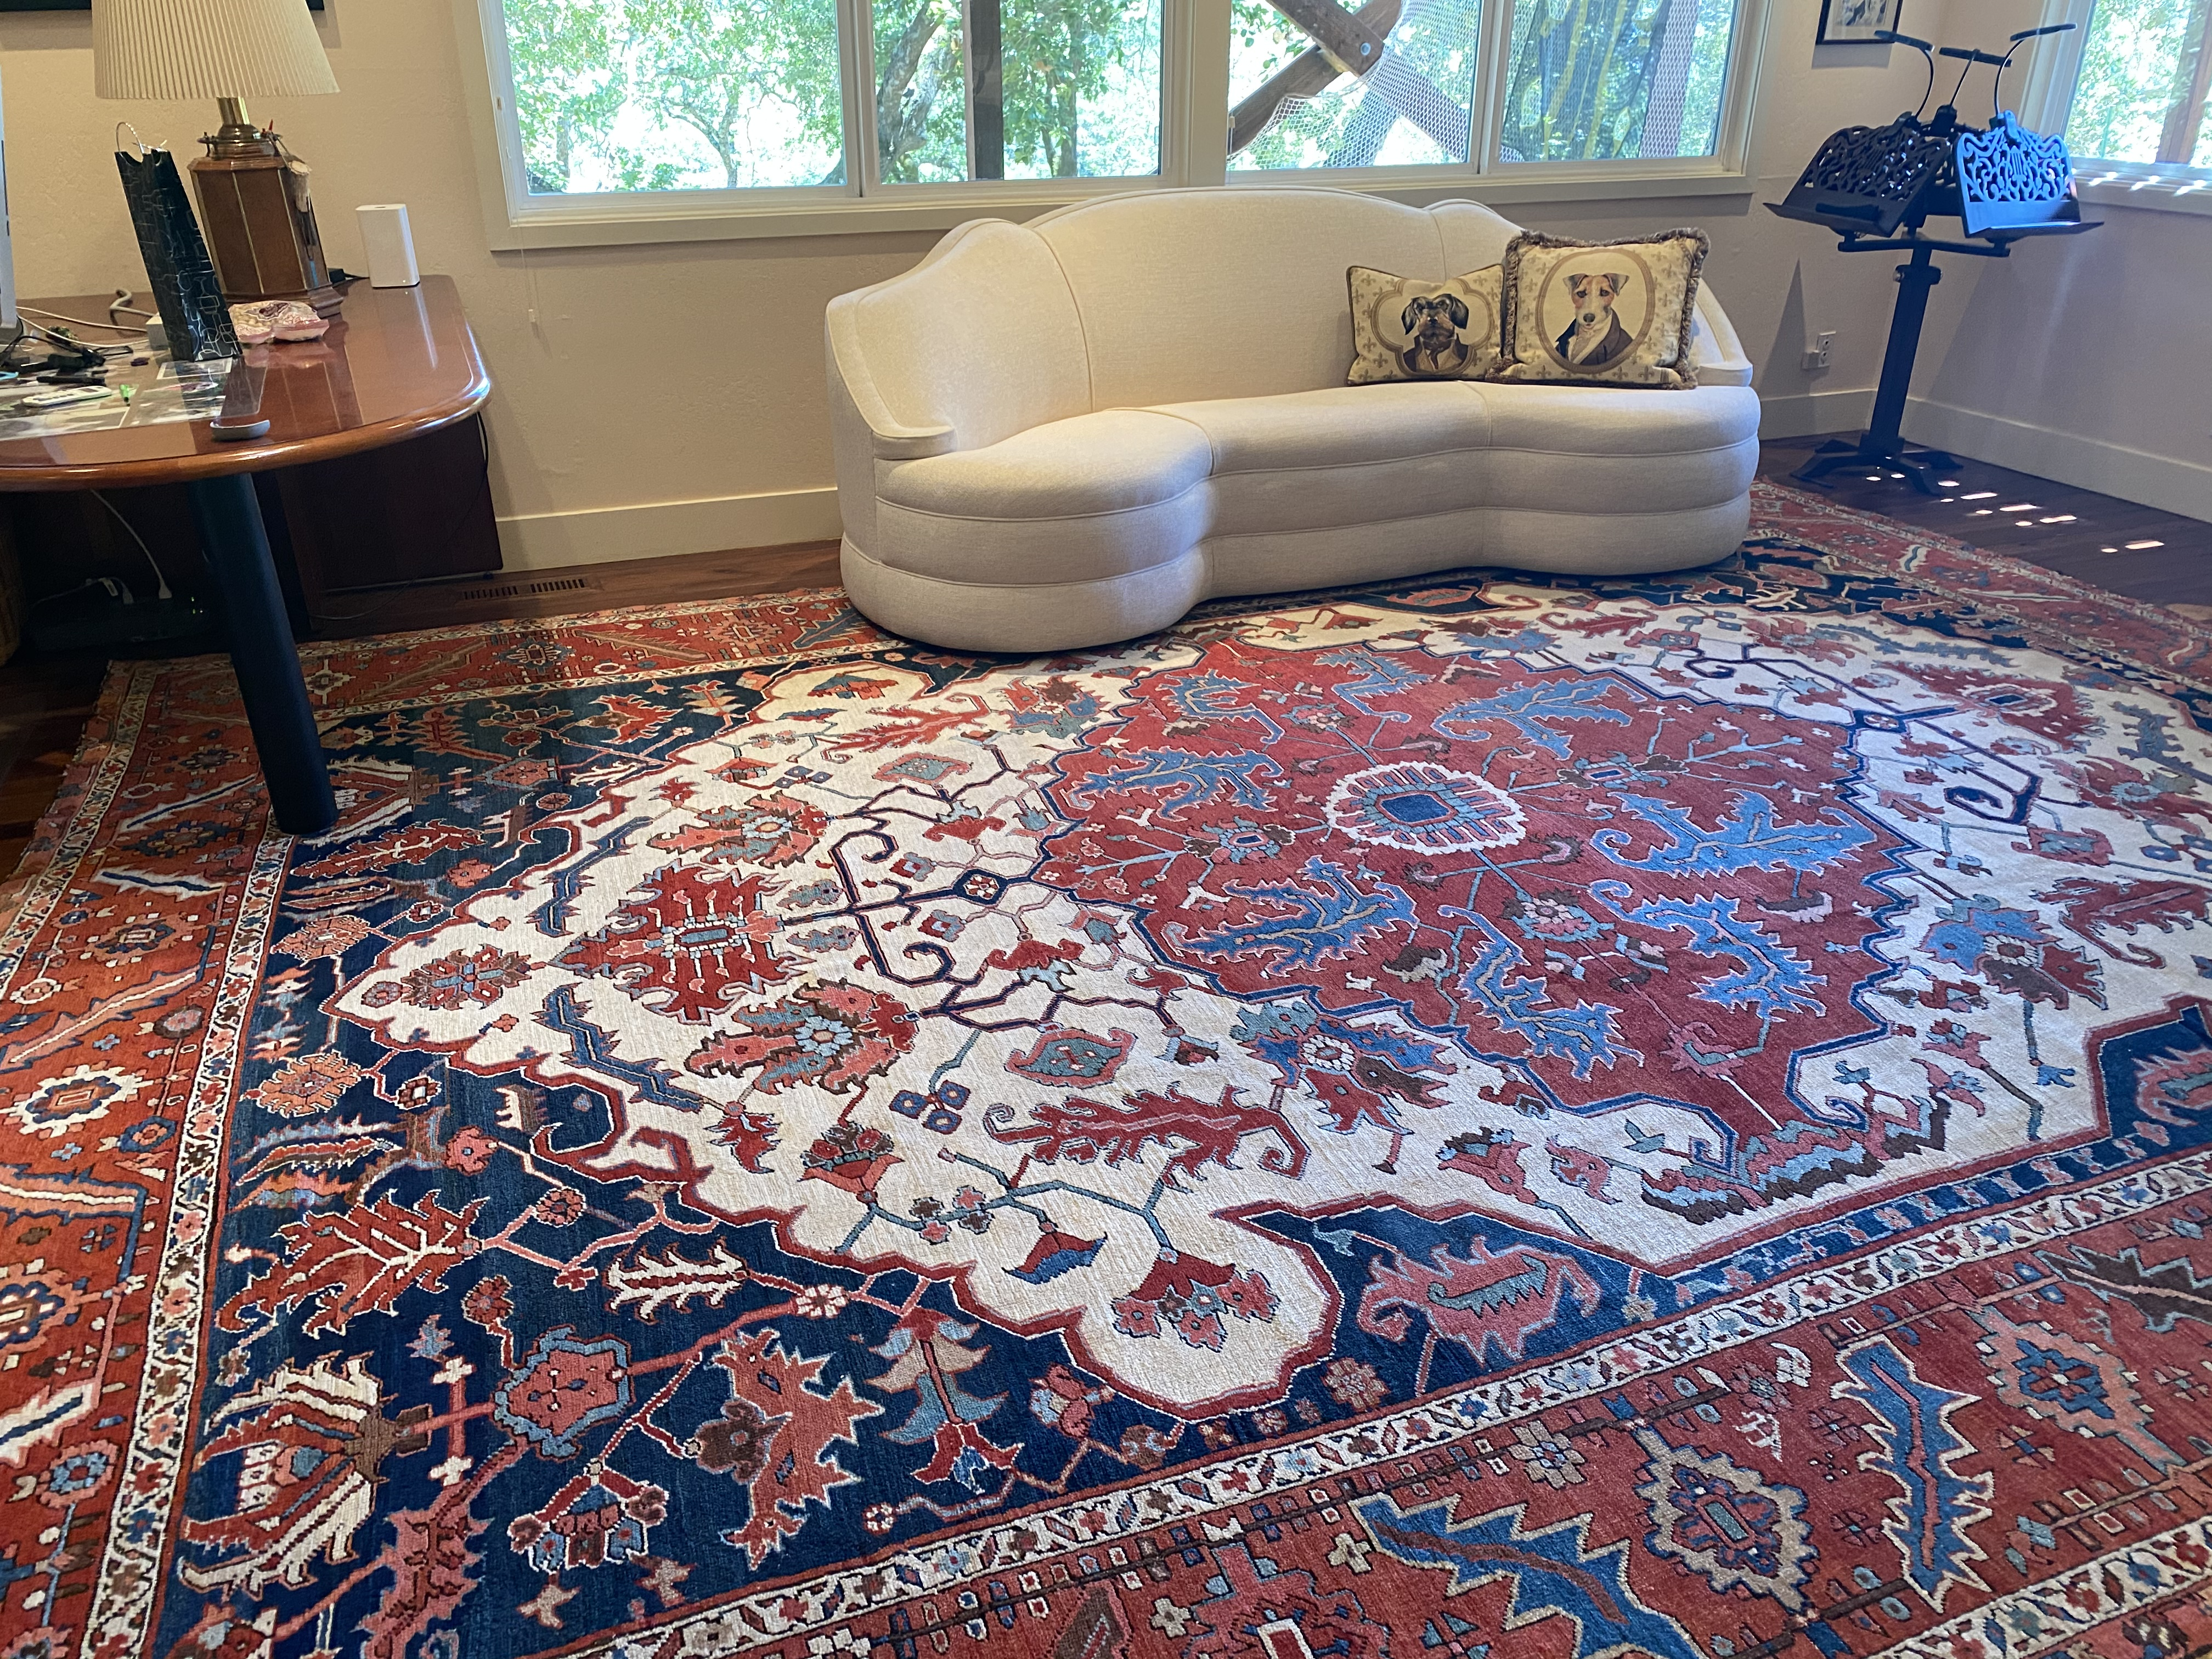 Beautiful Antique Serapi & Antique Tapestry in Pam & Elmo's residence